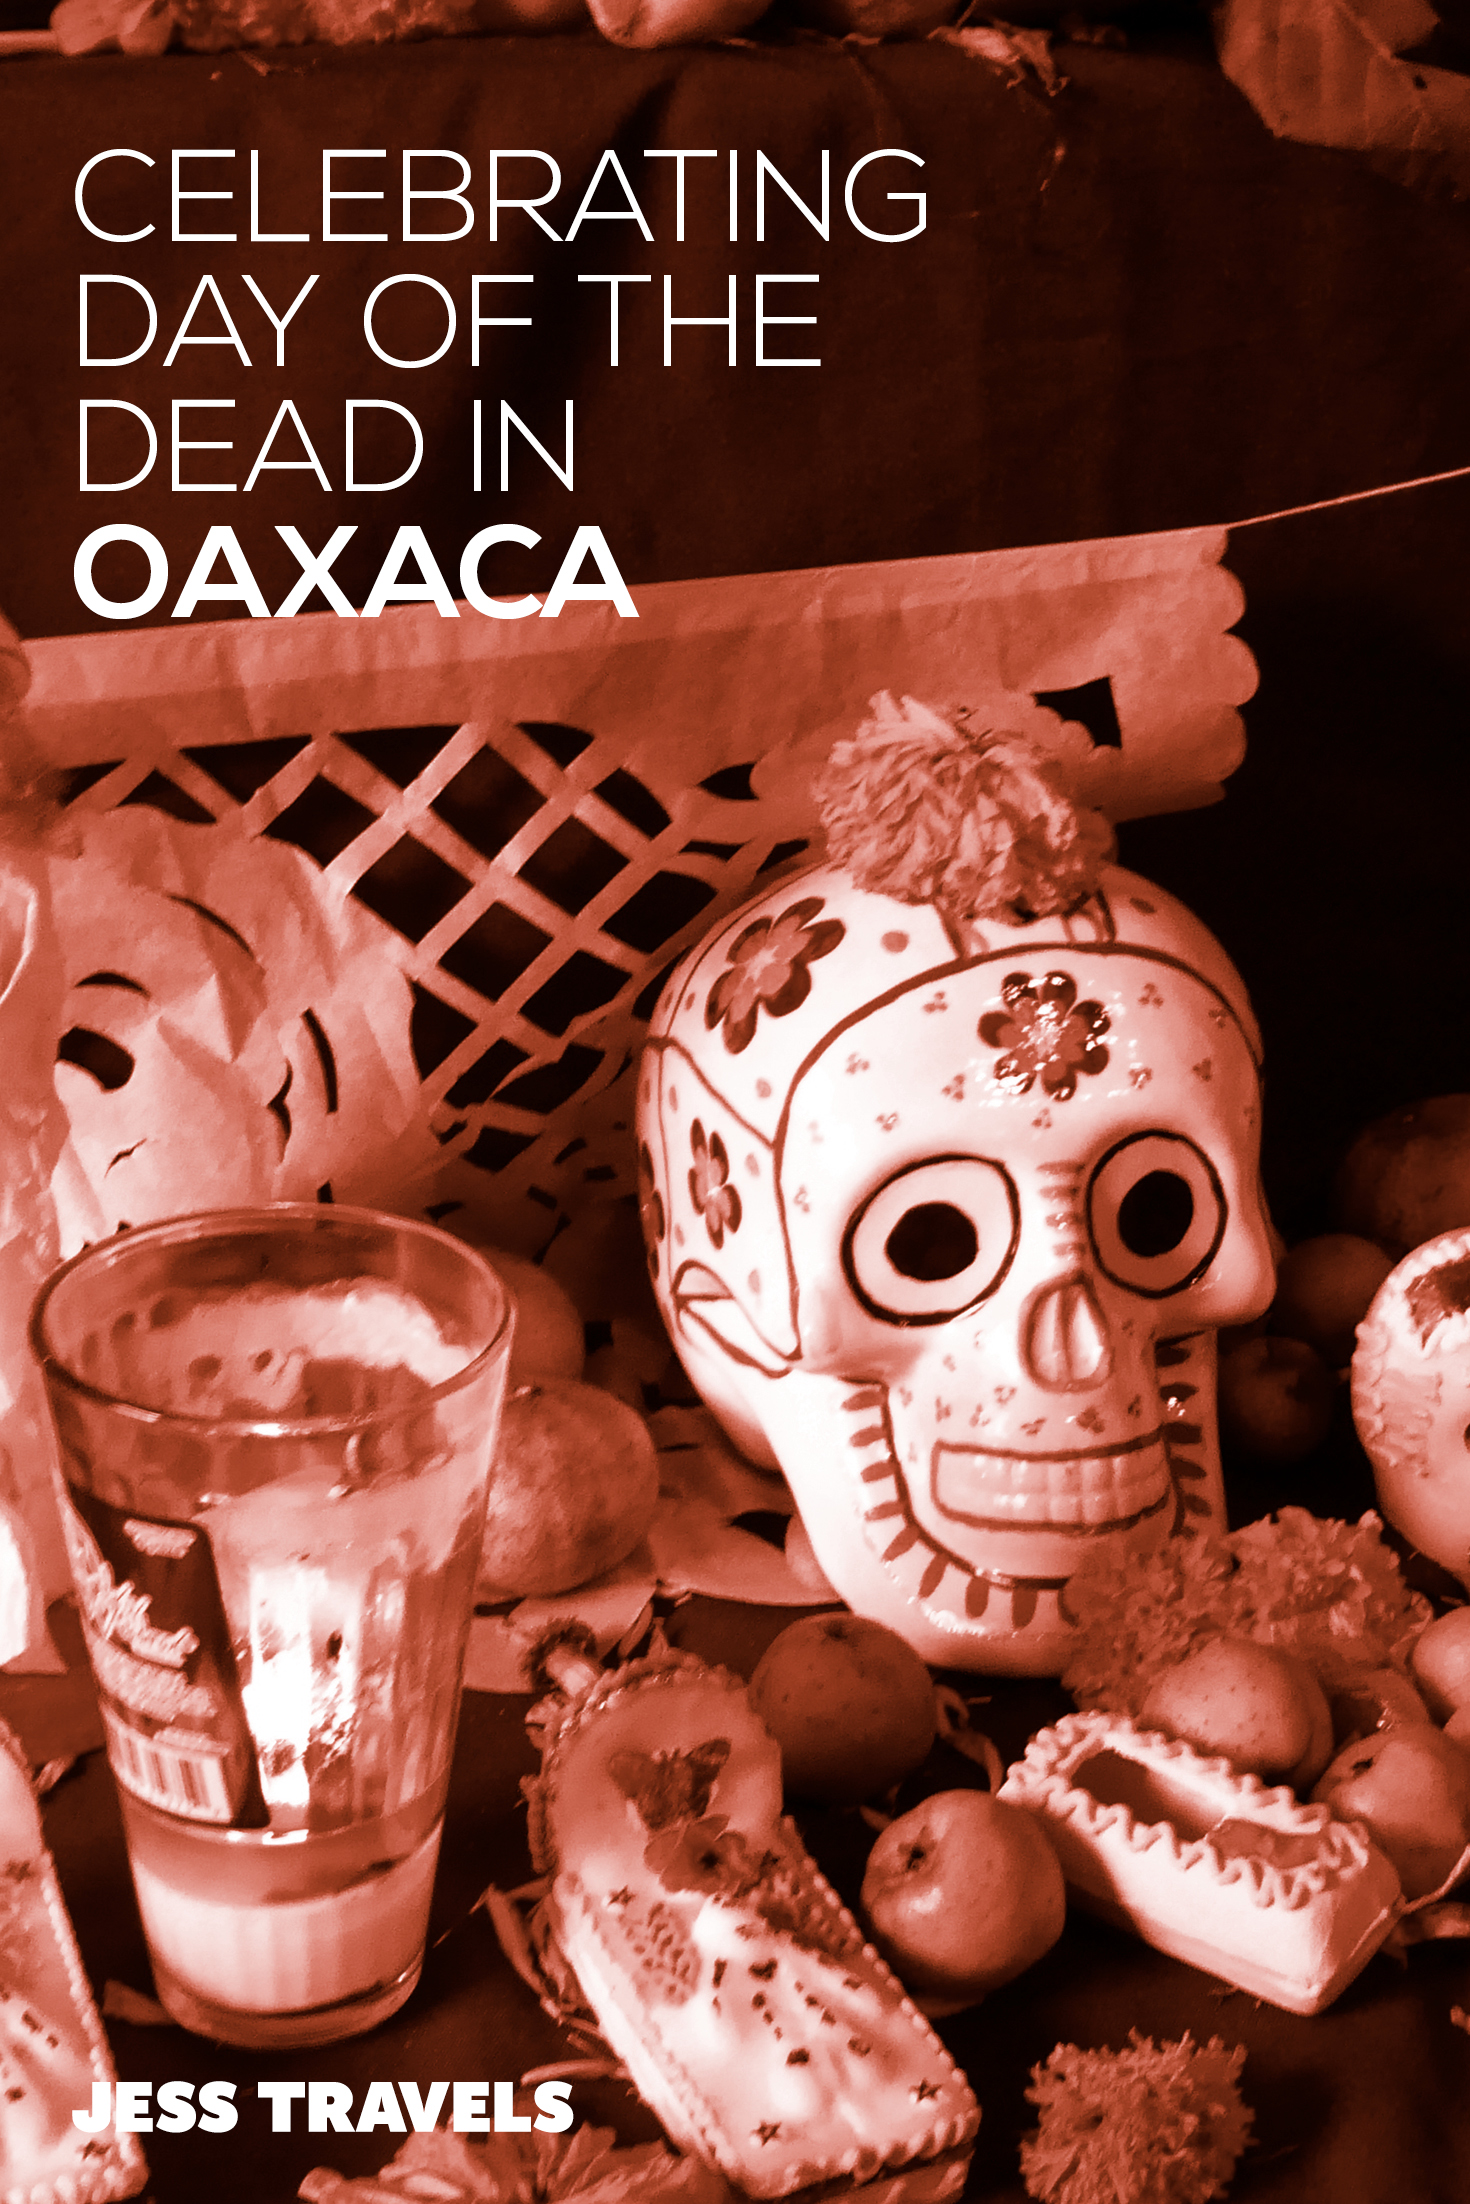 Celebrating Day of the Dead in Oaxaca - Mexico. My experience of the incredible festival in Mexico - Dia de los Mueros or Day of the Dead. Sugar skulls, fancy dress and street parties! #Mexico #mexicotravel #sugarskull #dayofthedead